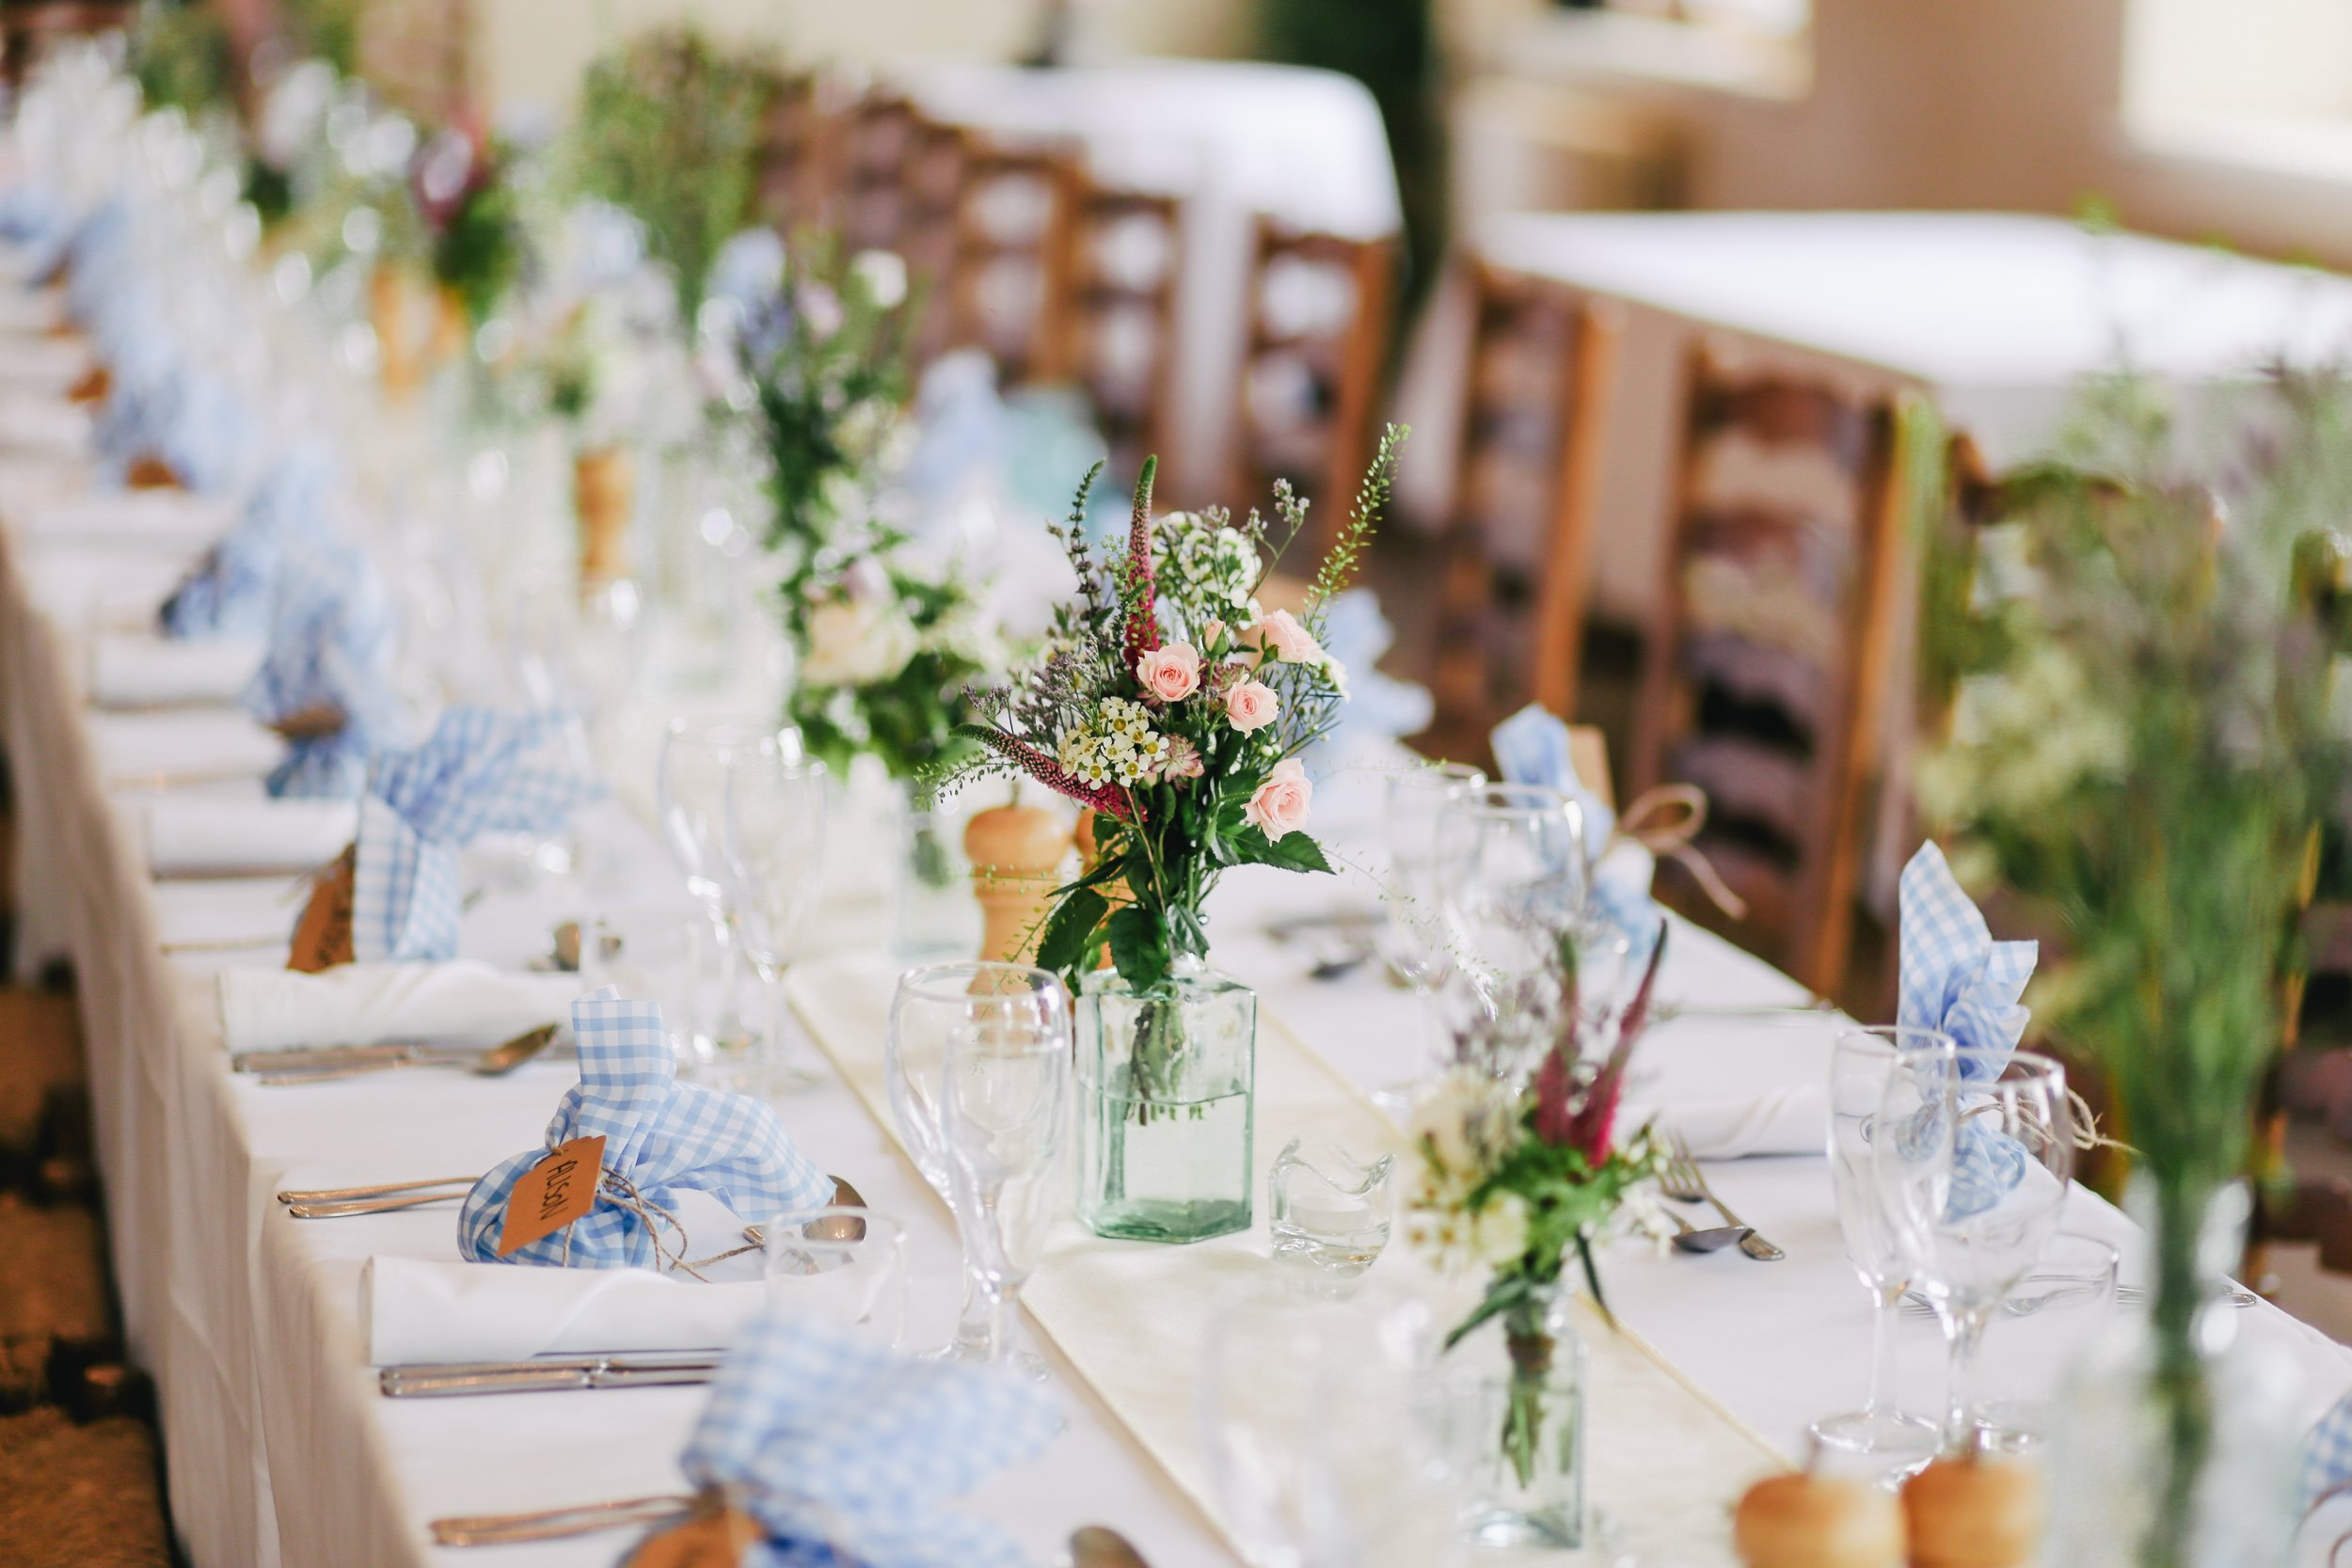 Equipment Hire - Our equipment hire is extensive, and we are able to source equipment for any size event.Fine Dining Sets, Cooking Equipment, Vintage china, Vintage props, BBQ, Display china, Bars, Vintage benches and tablesAnd much more…….